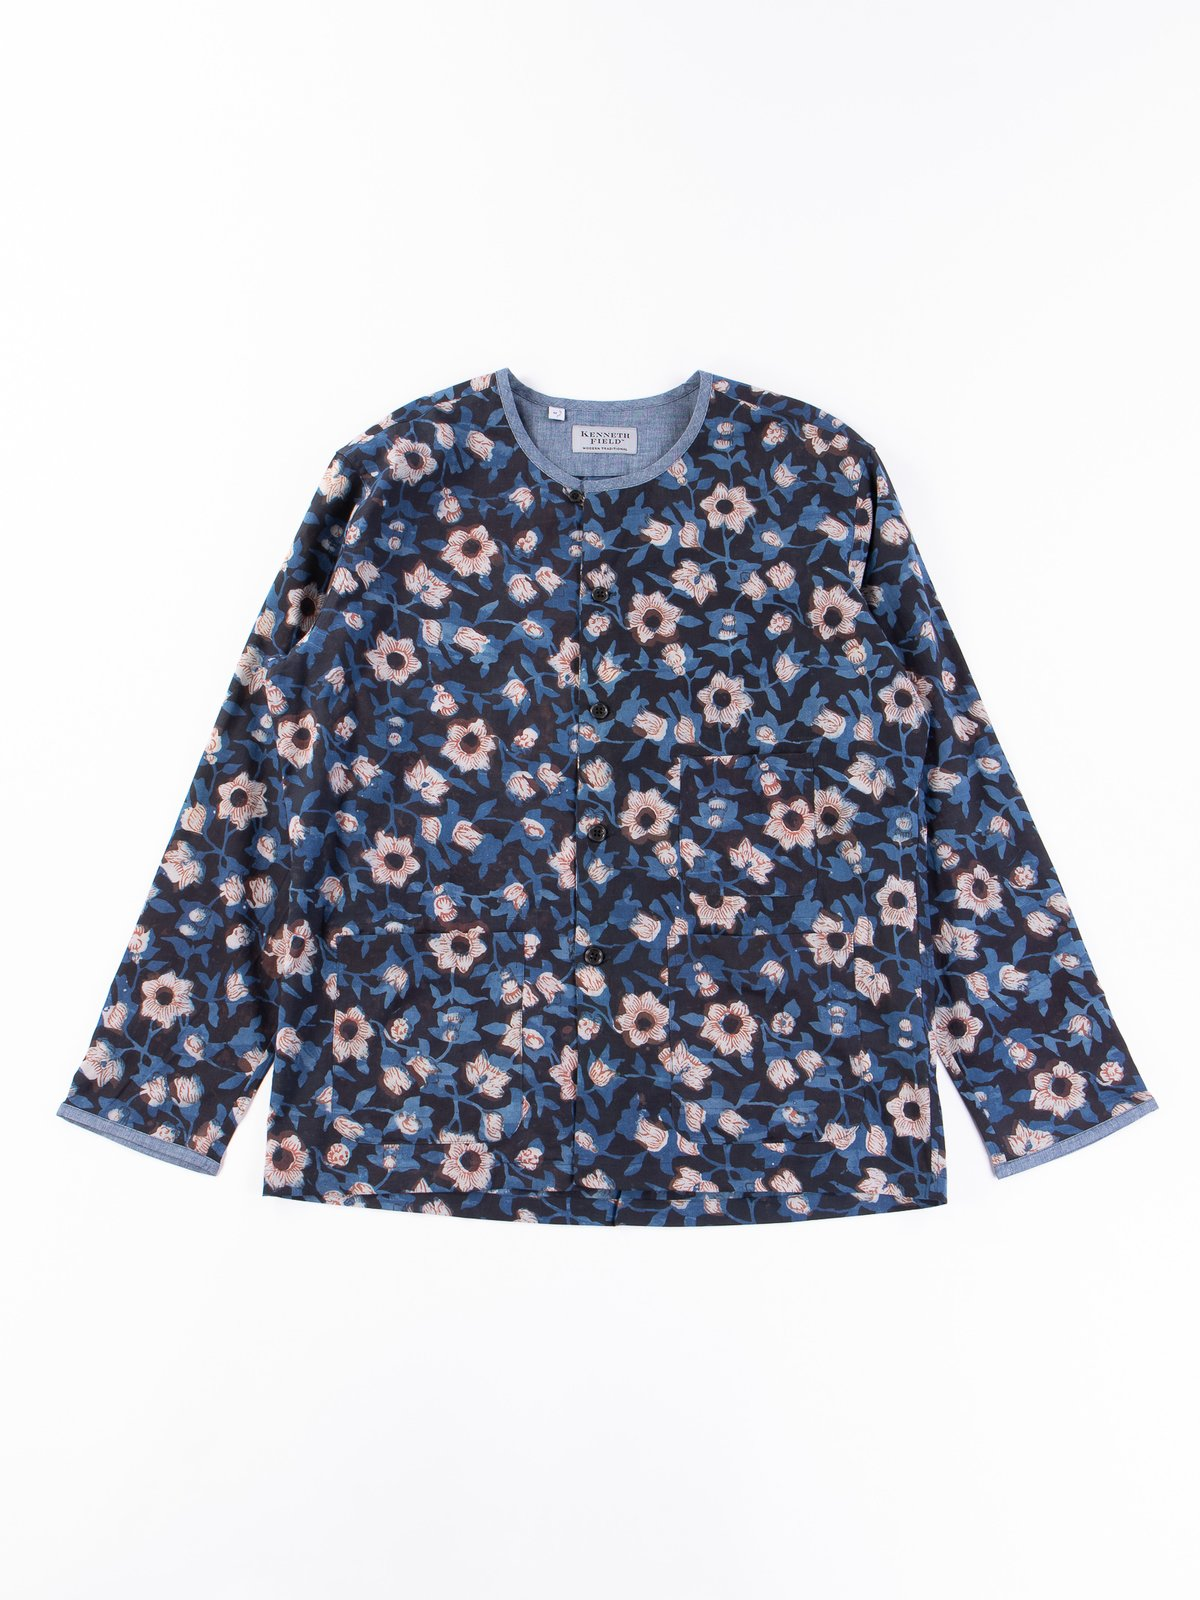 Indigo Flower Indian Print EZ–JACIII Jacket - Image 1